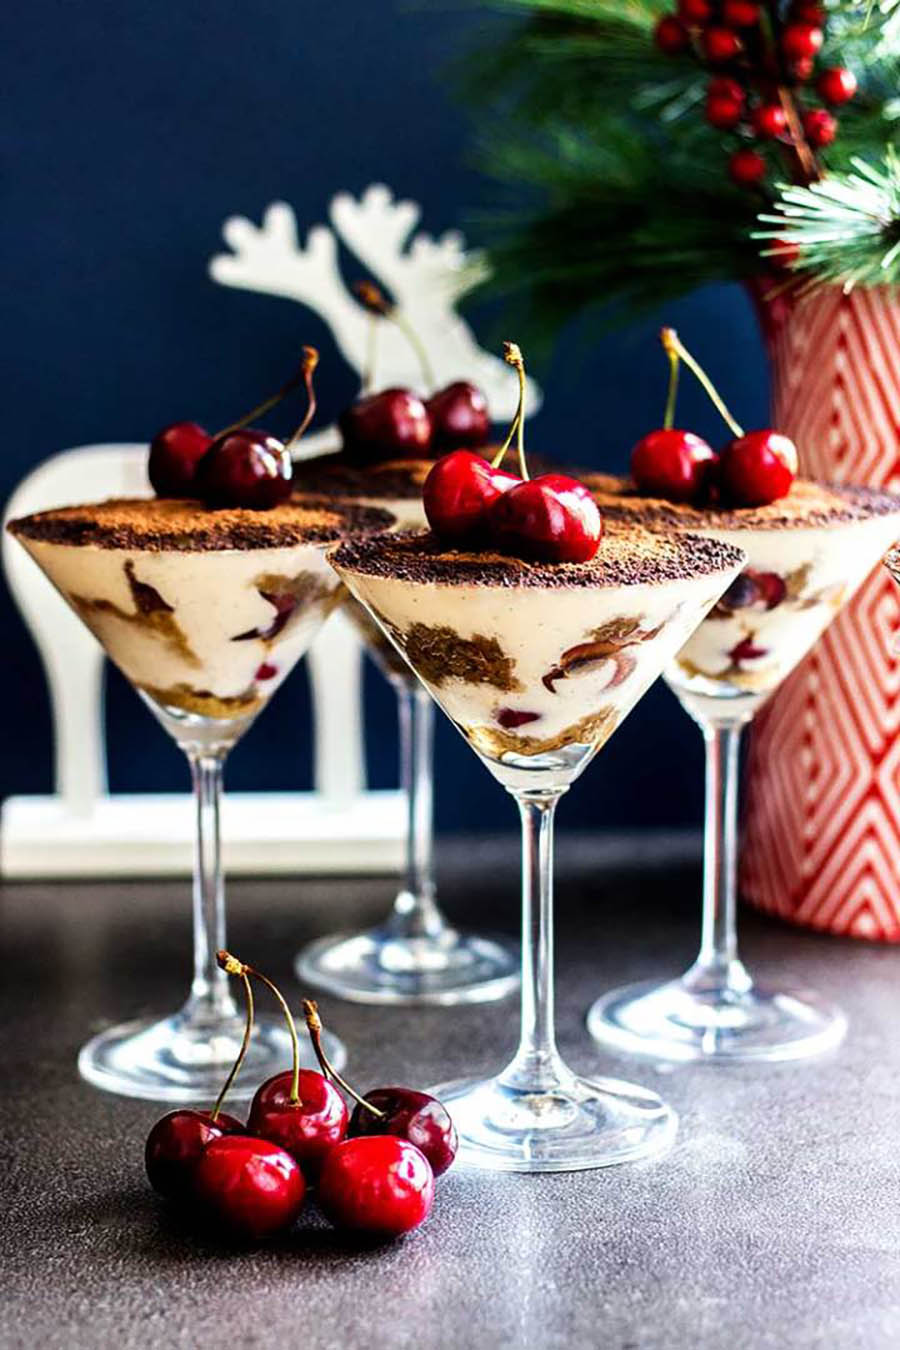 Four servings of tiramisu served in martini glasses with festive red and white decorations in the background.